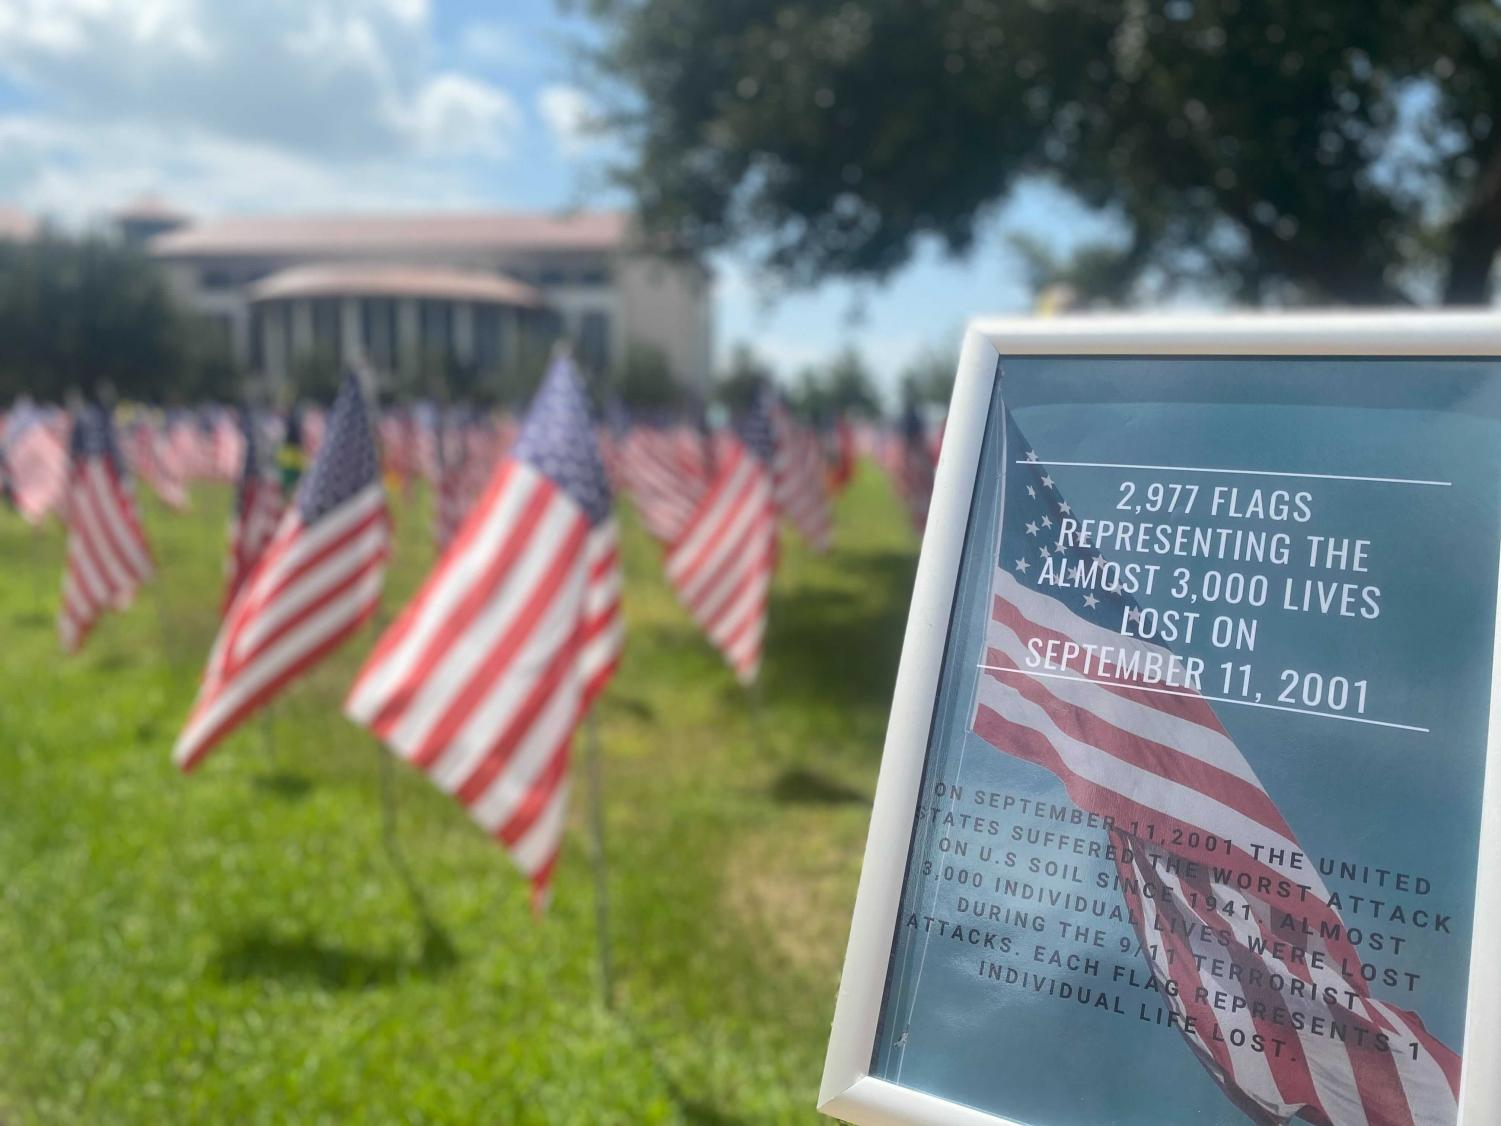 Flags fly across Valencia College campuses to commemorate the 20th anniversary of 9/11.